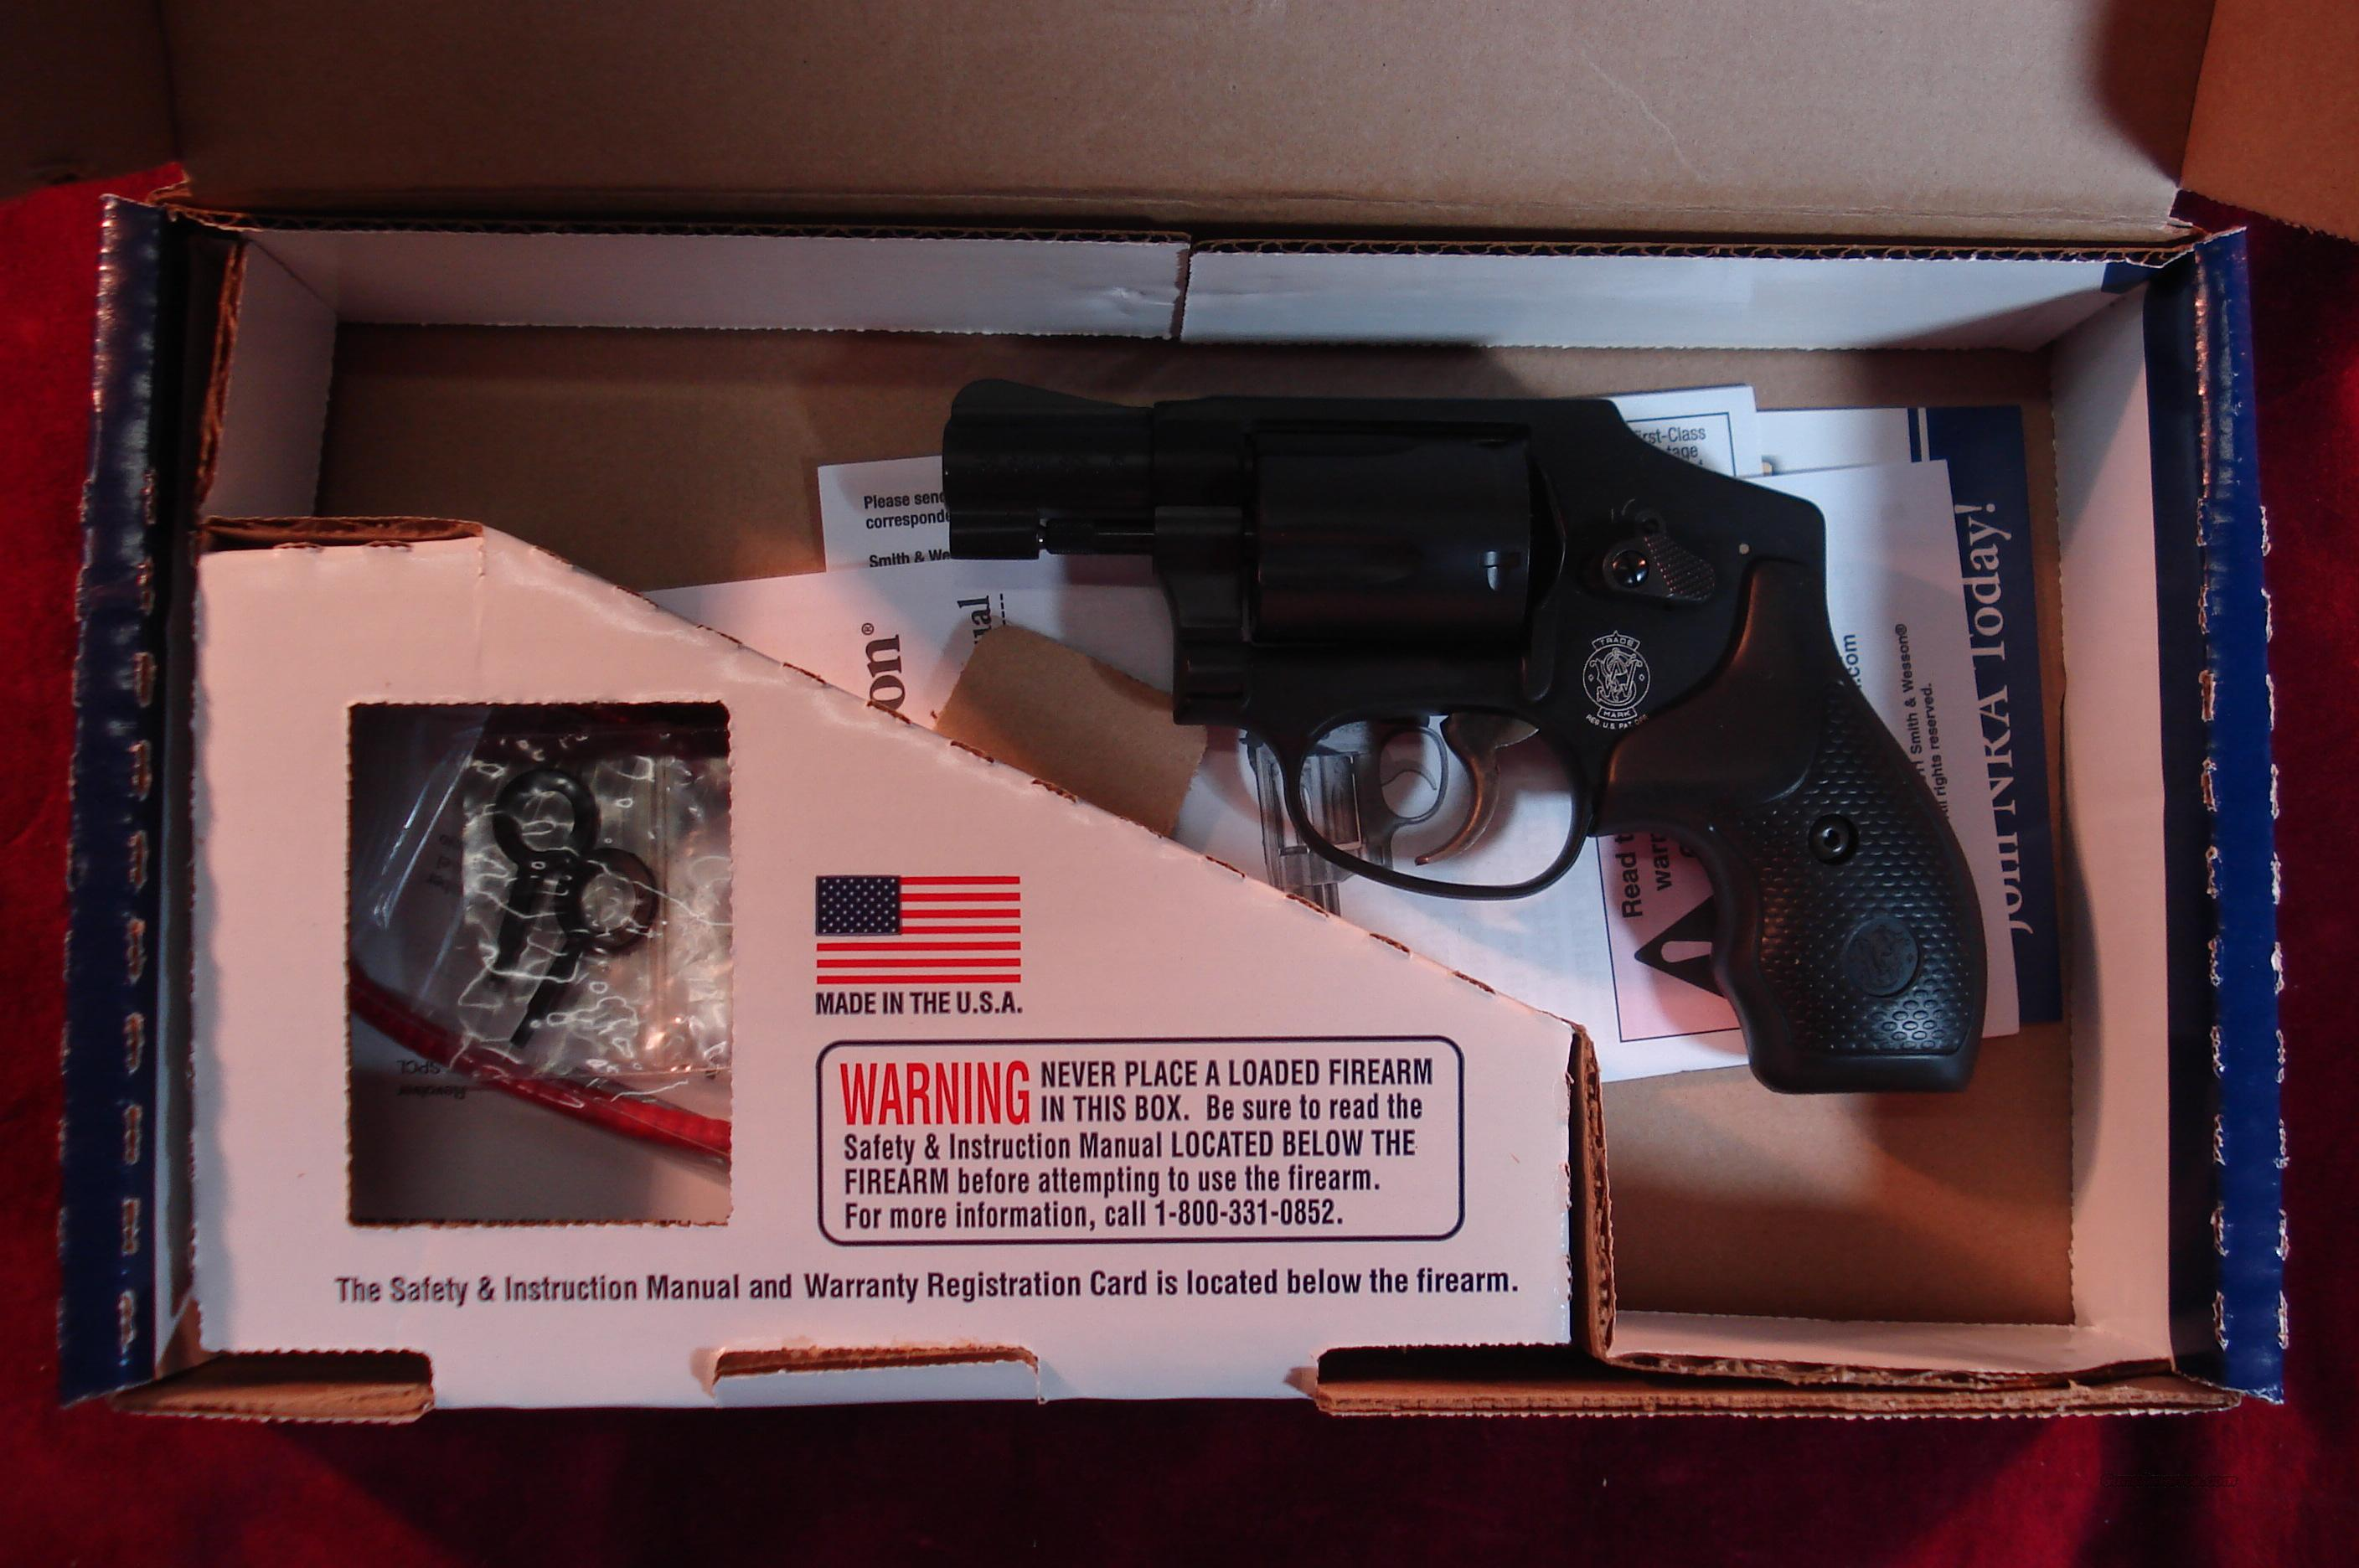 SMITH AND WESSON 442 38 SPECIAL NEW (162810)   Guns > Pistols > Smith & Wesson Revolvers > Pocket Pistols